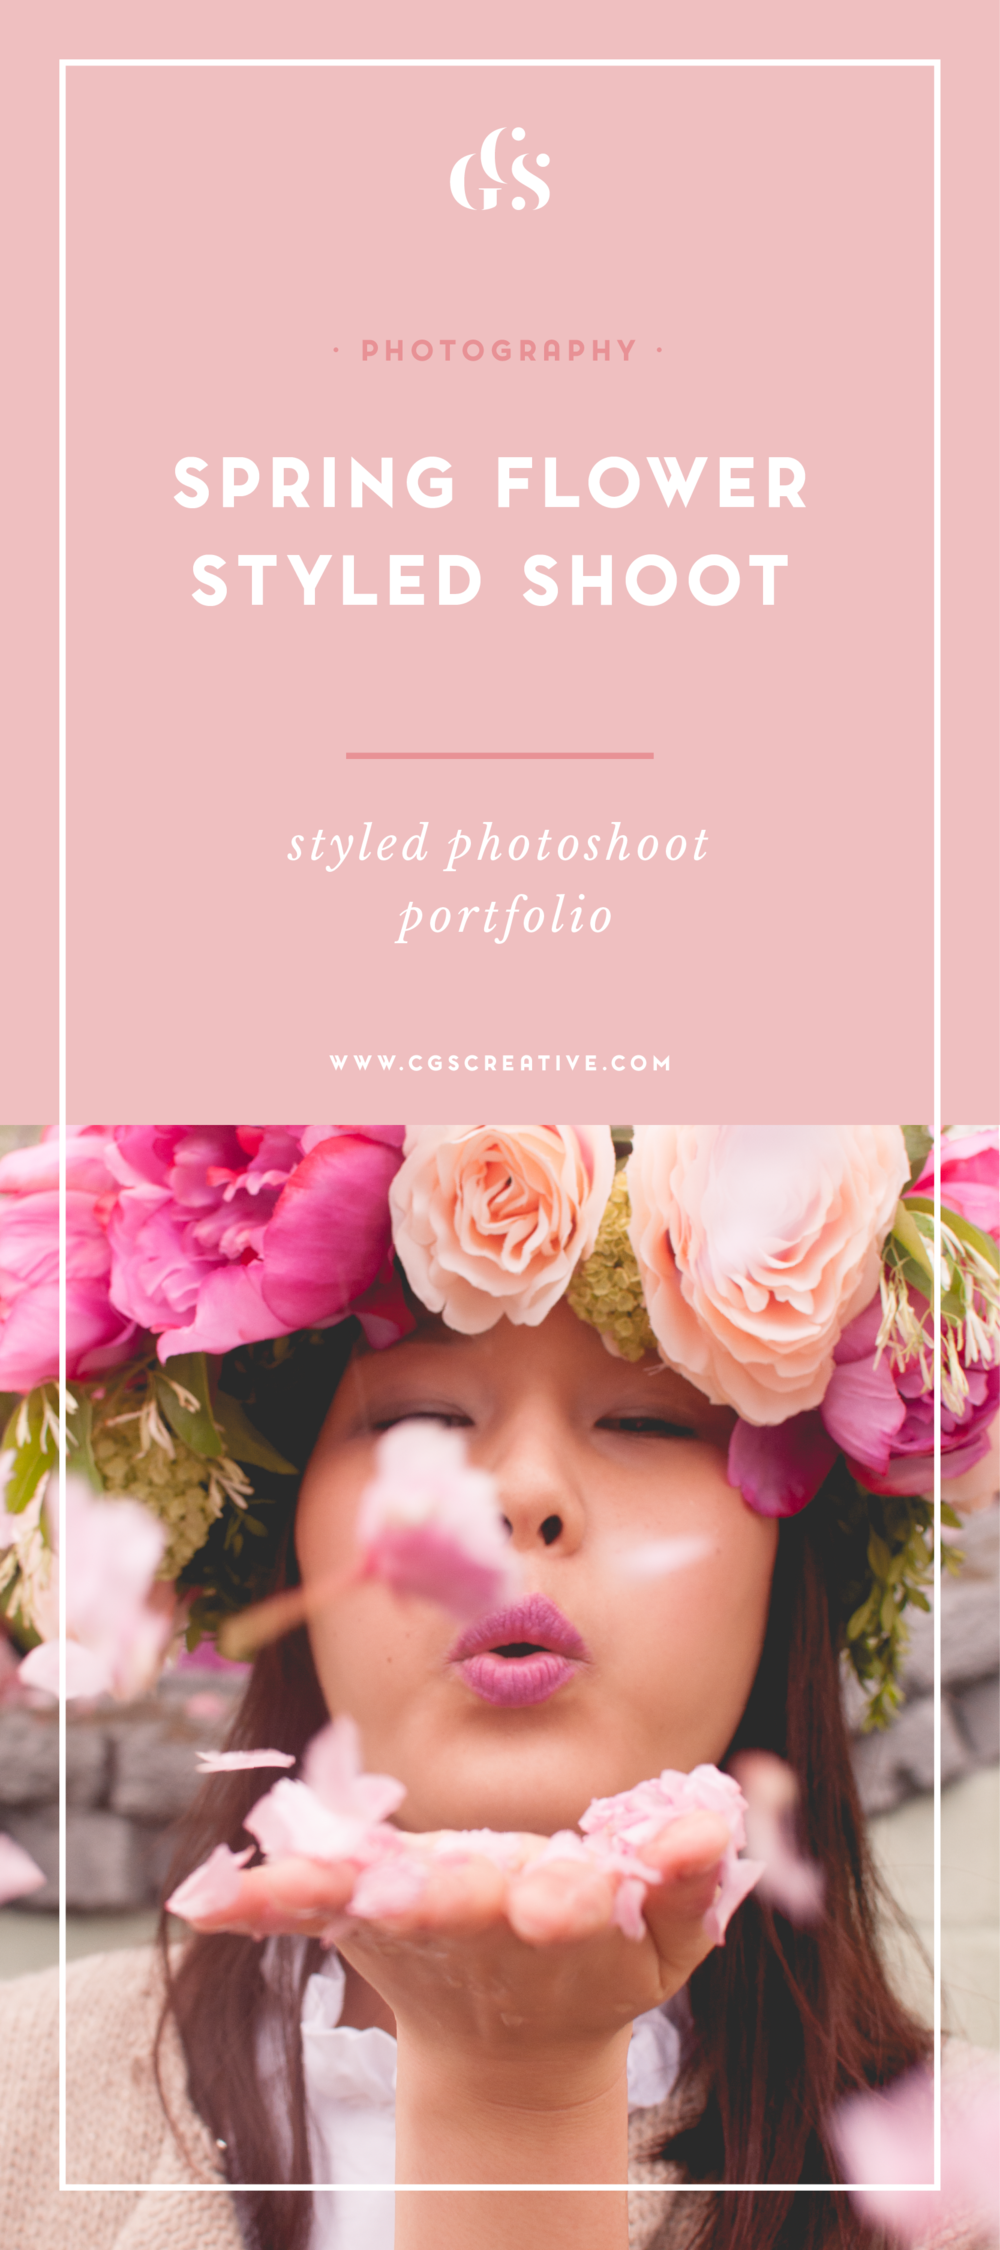 Spring Flower Crown Styled Photoshoot by Roxy Hutton of CGScreative-05.png